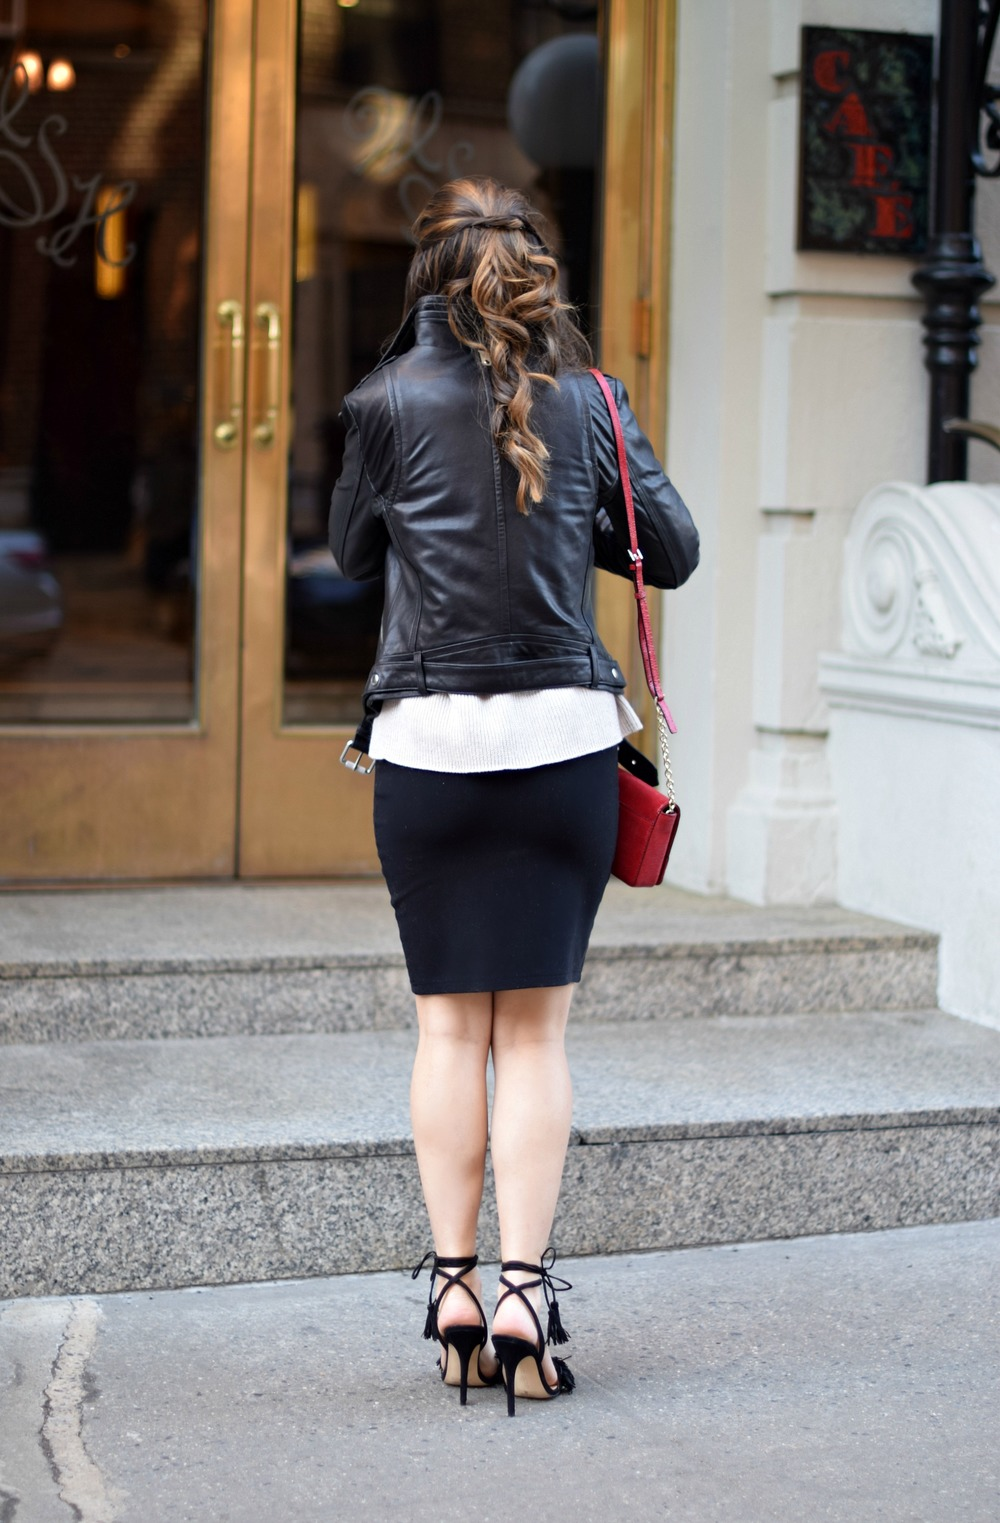 Ivanka Trump Fringe Sandals Mackage Moto Jacket Louboutins & Love Fashion Blog Esther Santer NYC Street Style Blogger Outfit OOTD Leather Summer Spring Designer Clothes Shop Photoshoot Model Helmut Lang Sweater Skirt Beautiful Pretty Shoes Women Girl.jpg